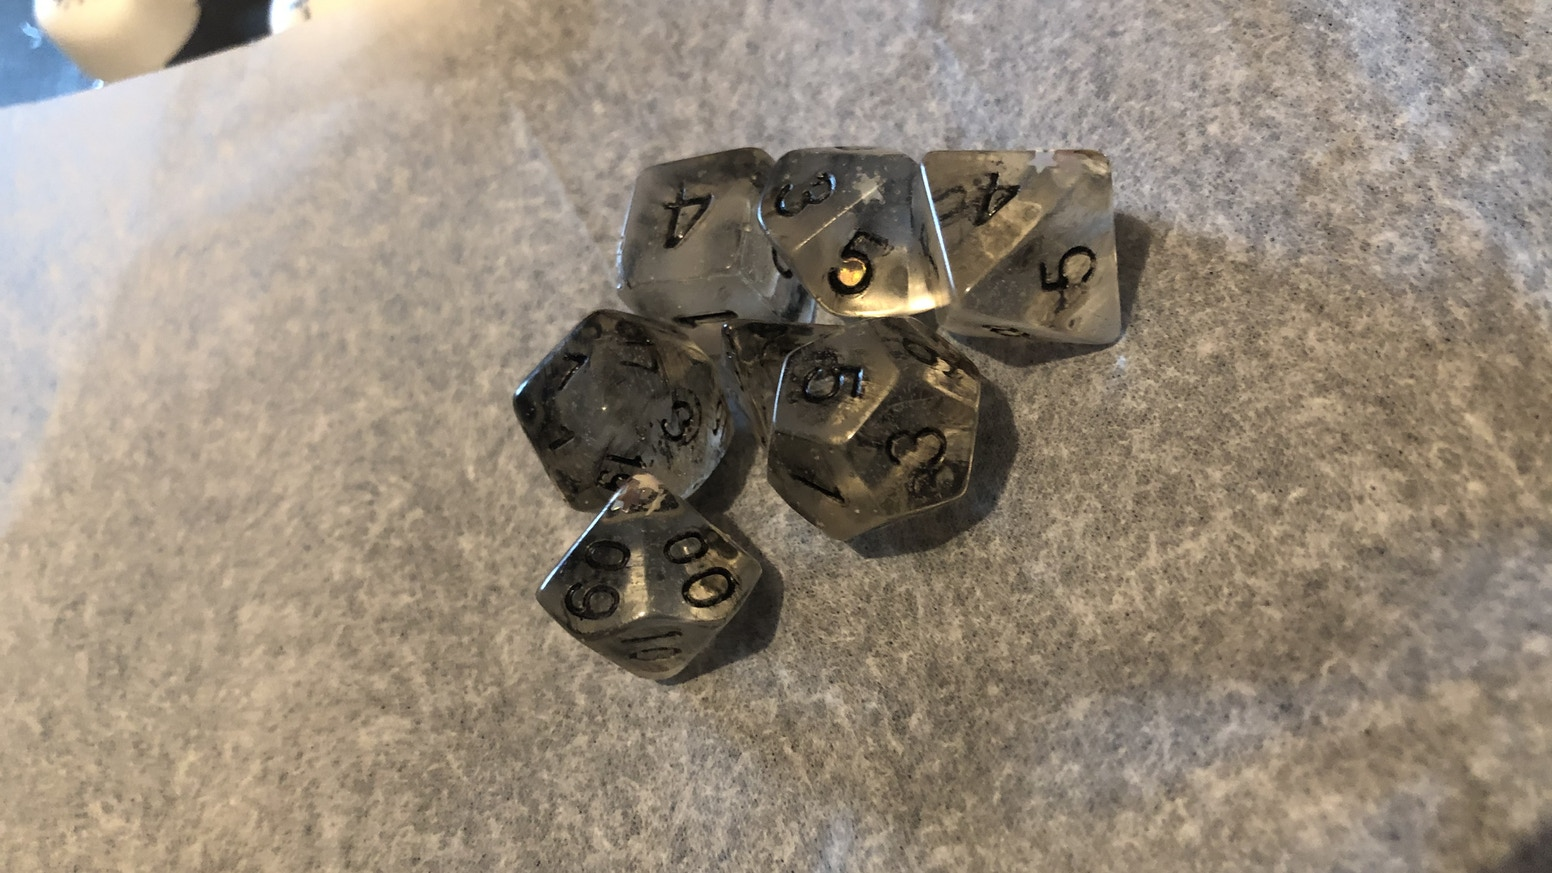 Handmade at home without big companies. Custom and basic dice sets as well as some special dice!